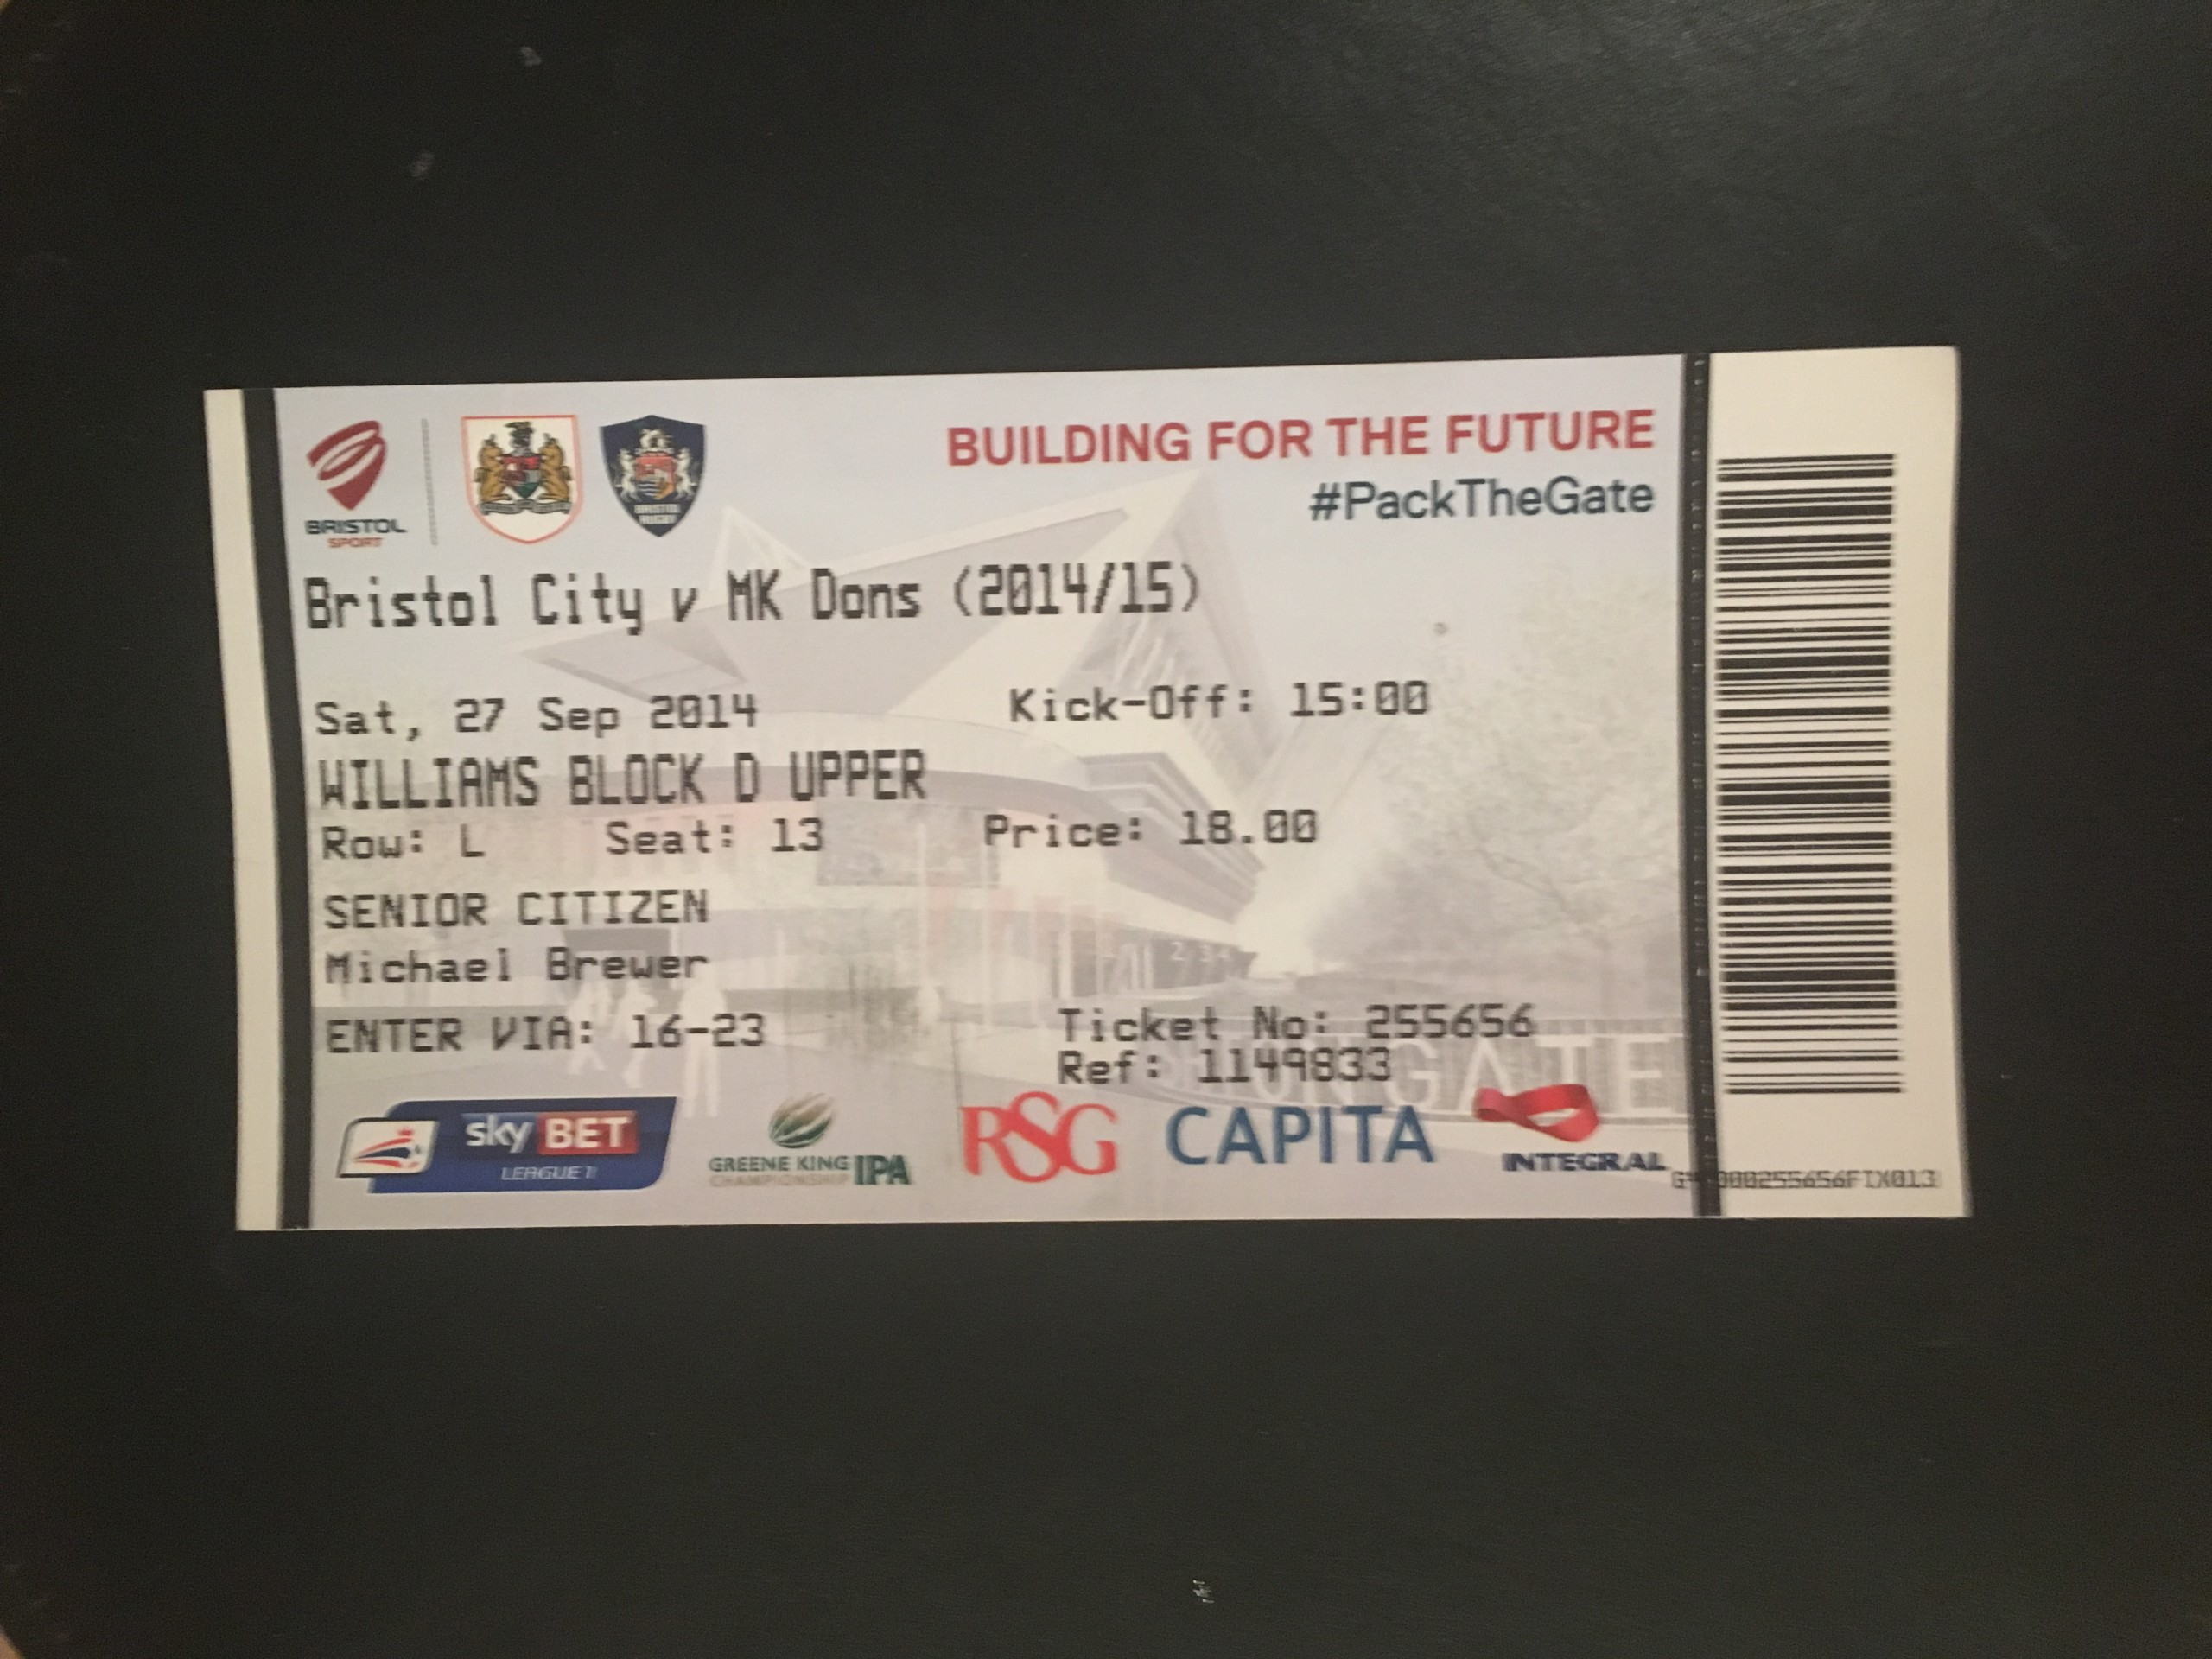 Bristol City v MK Dons 27-09-2014 Ticket